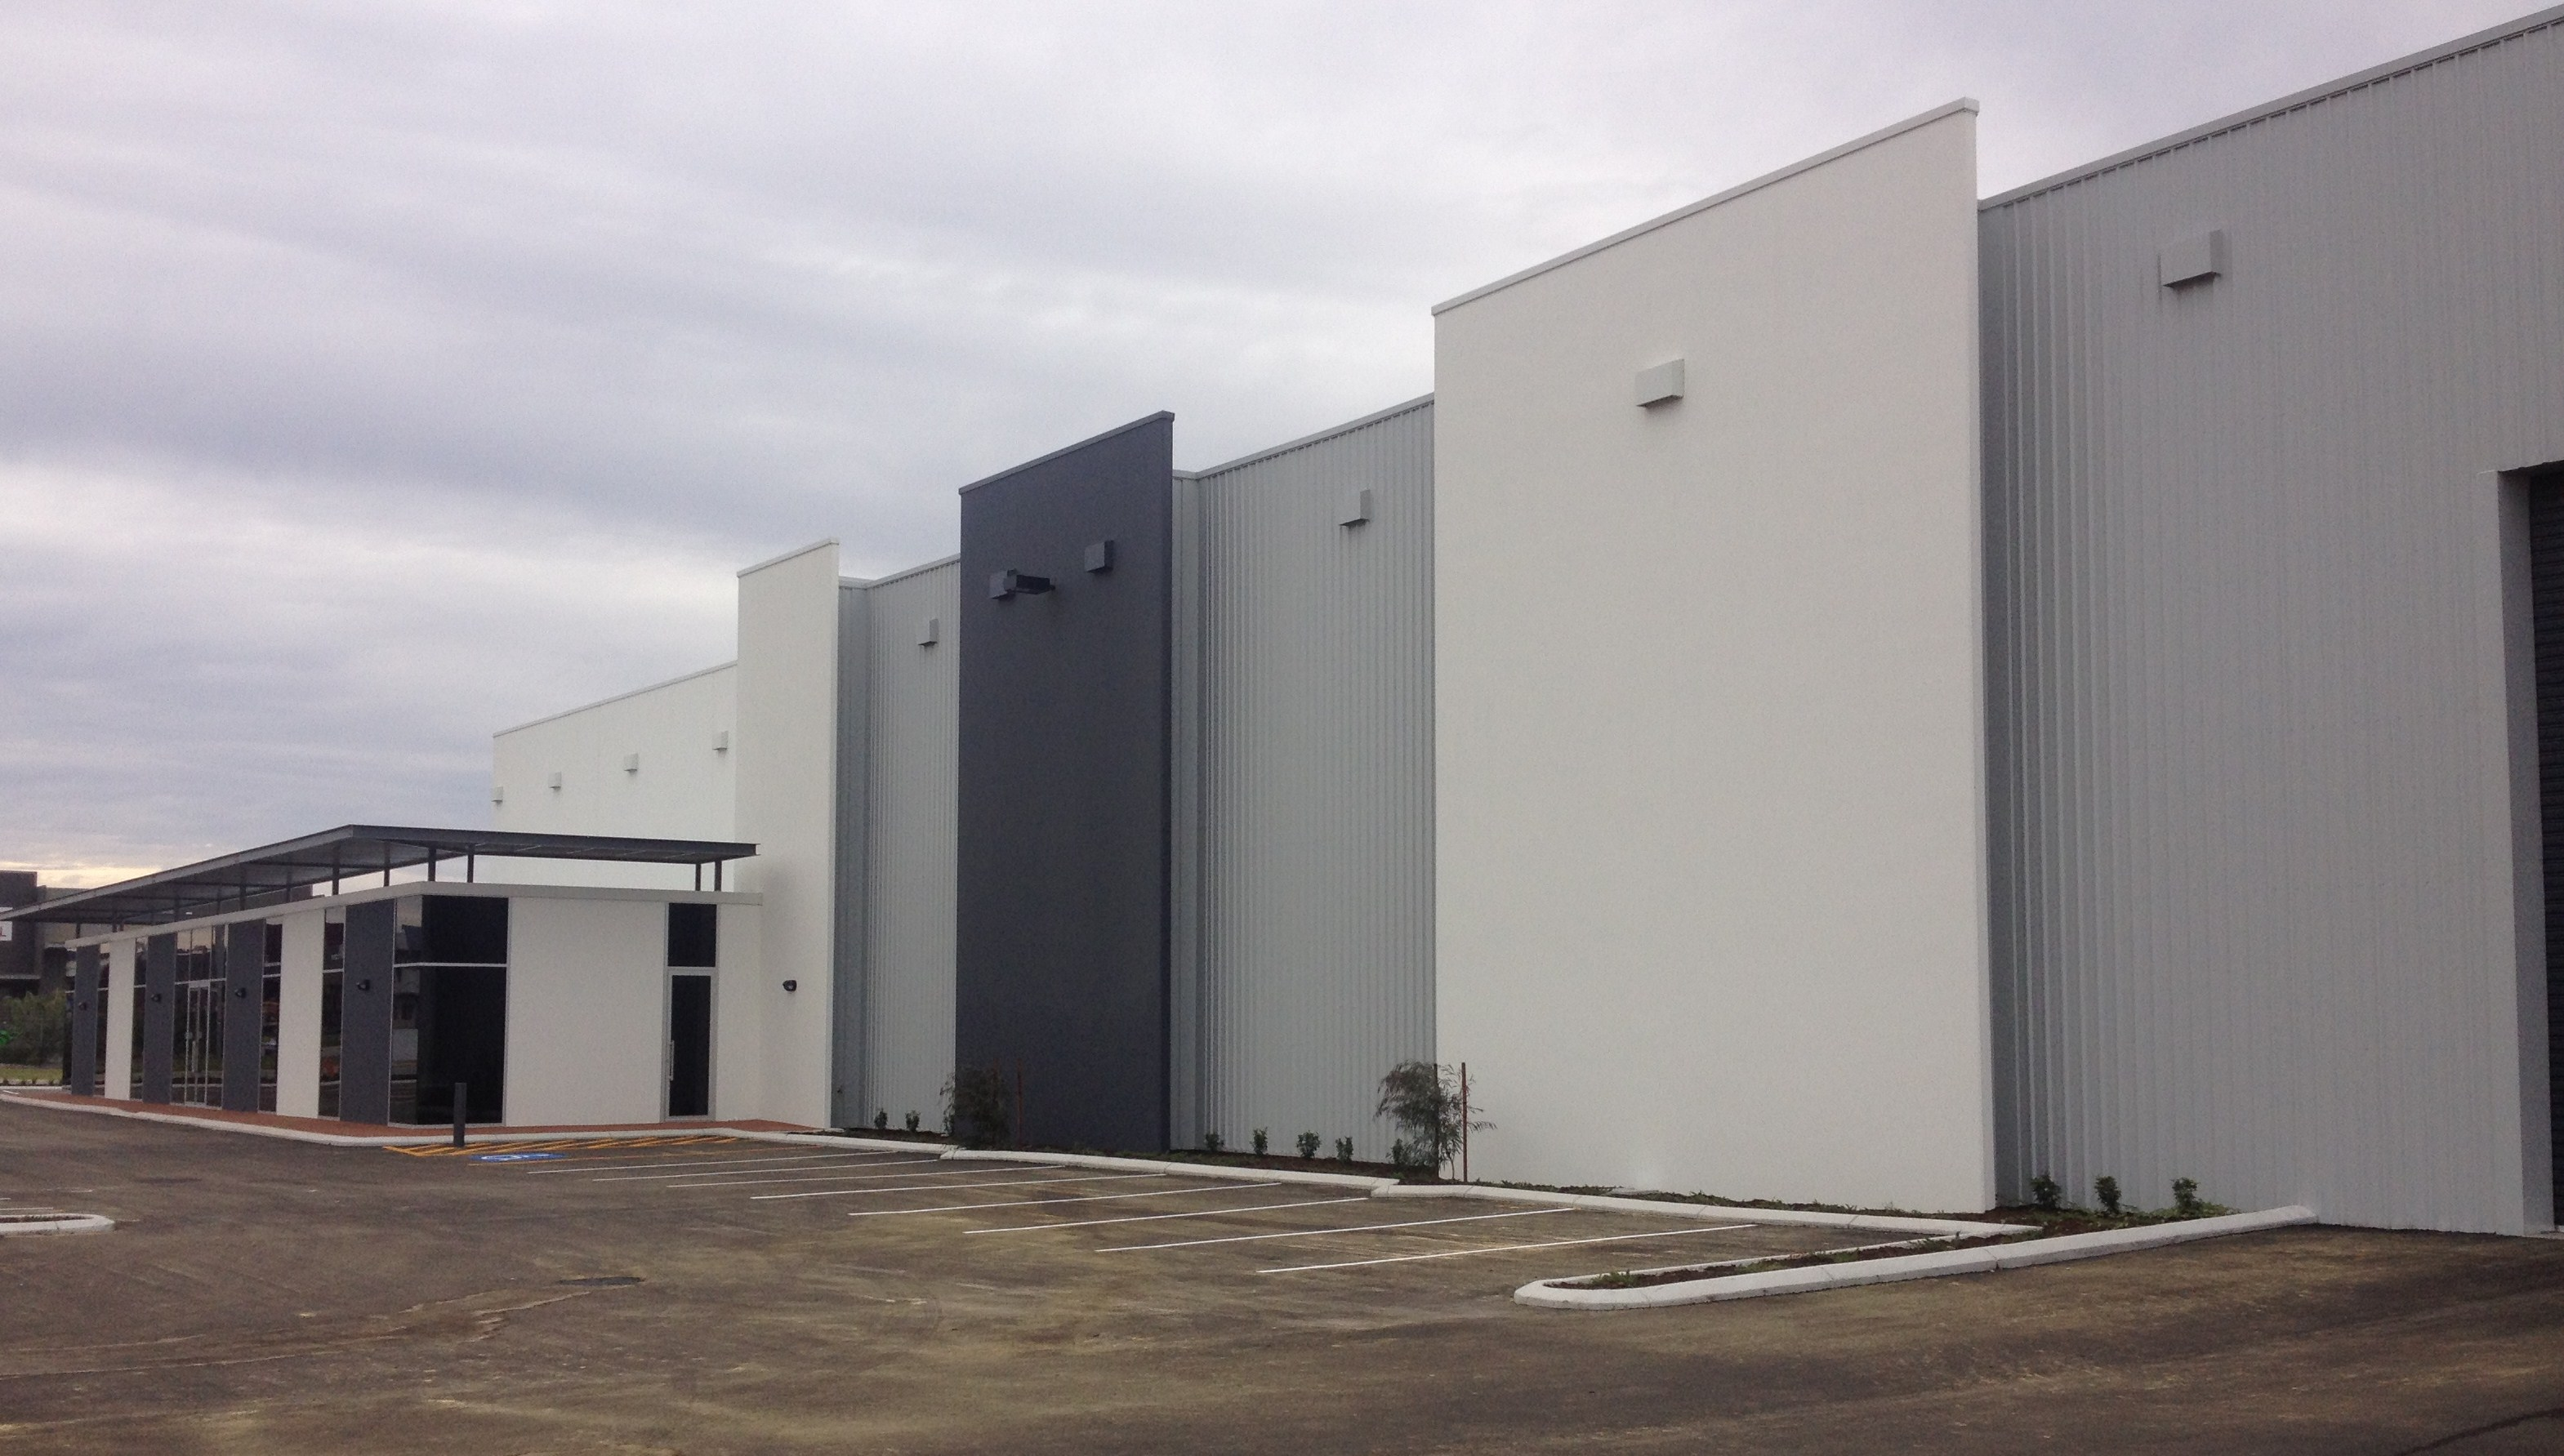 Exterior of large scale warehouse unit, painted in shades of grey